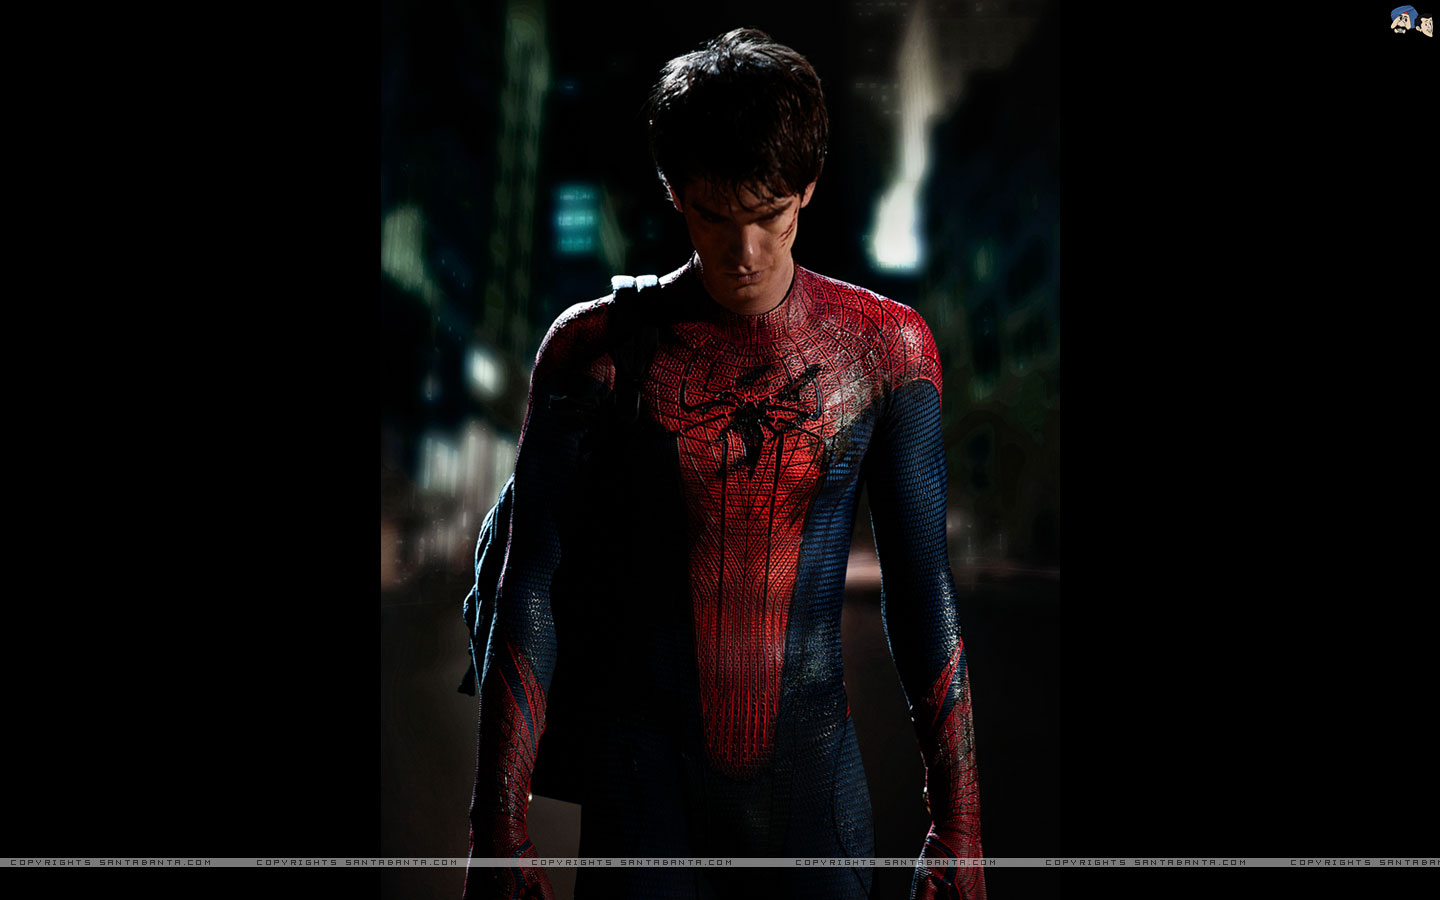 the amazing spider man wallpapers - Wallpapers Featuring Spider Man Marvel